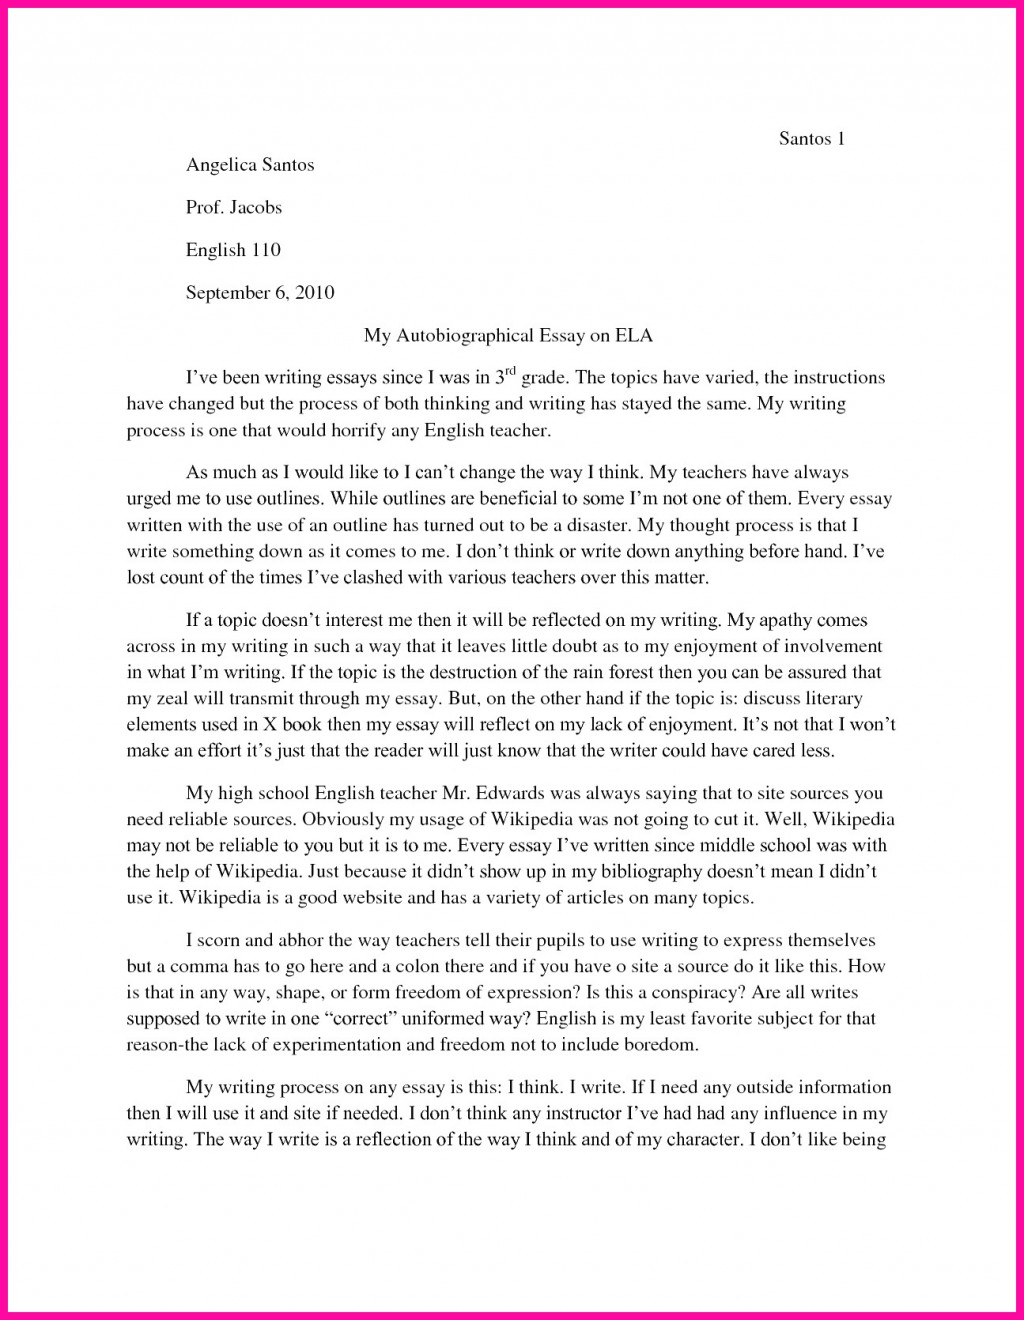 019 Essay Example How To Write An Autobiographical Autobiography Incredible Novel Essays Alexander Chee For Graduate School Scholarship Large